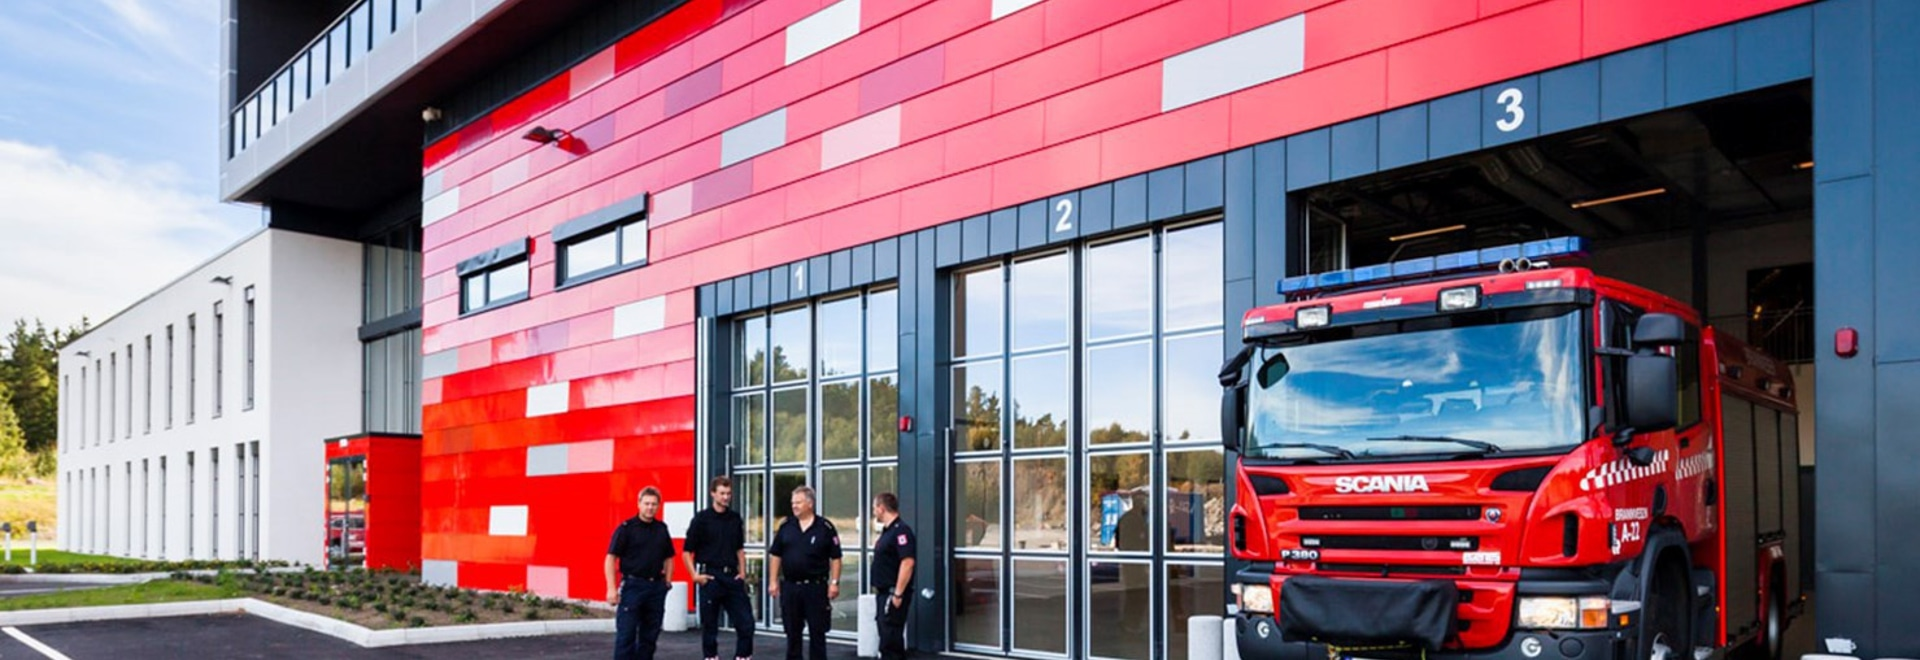 ARENDAL FIRE STATION, NORWAY'S FINEST!